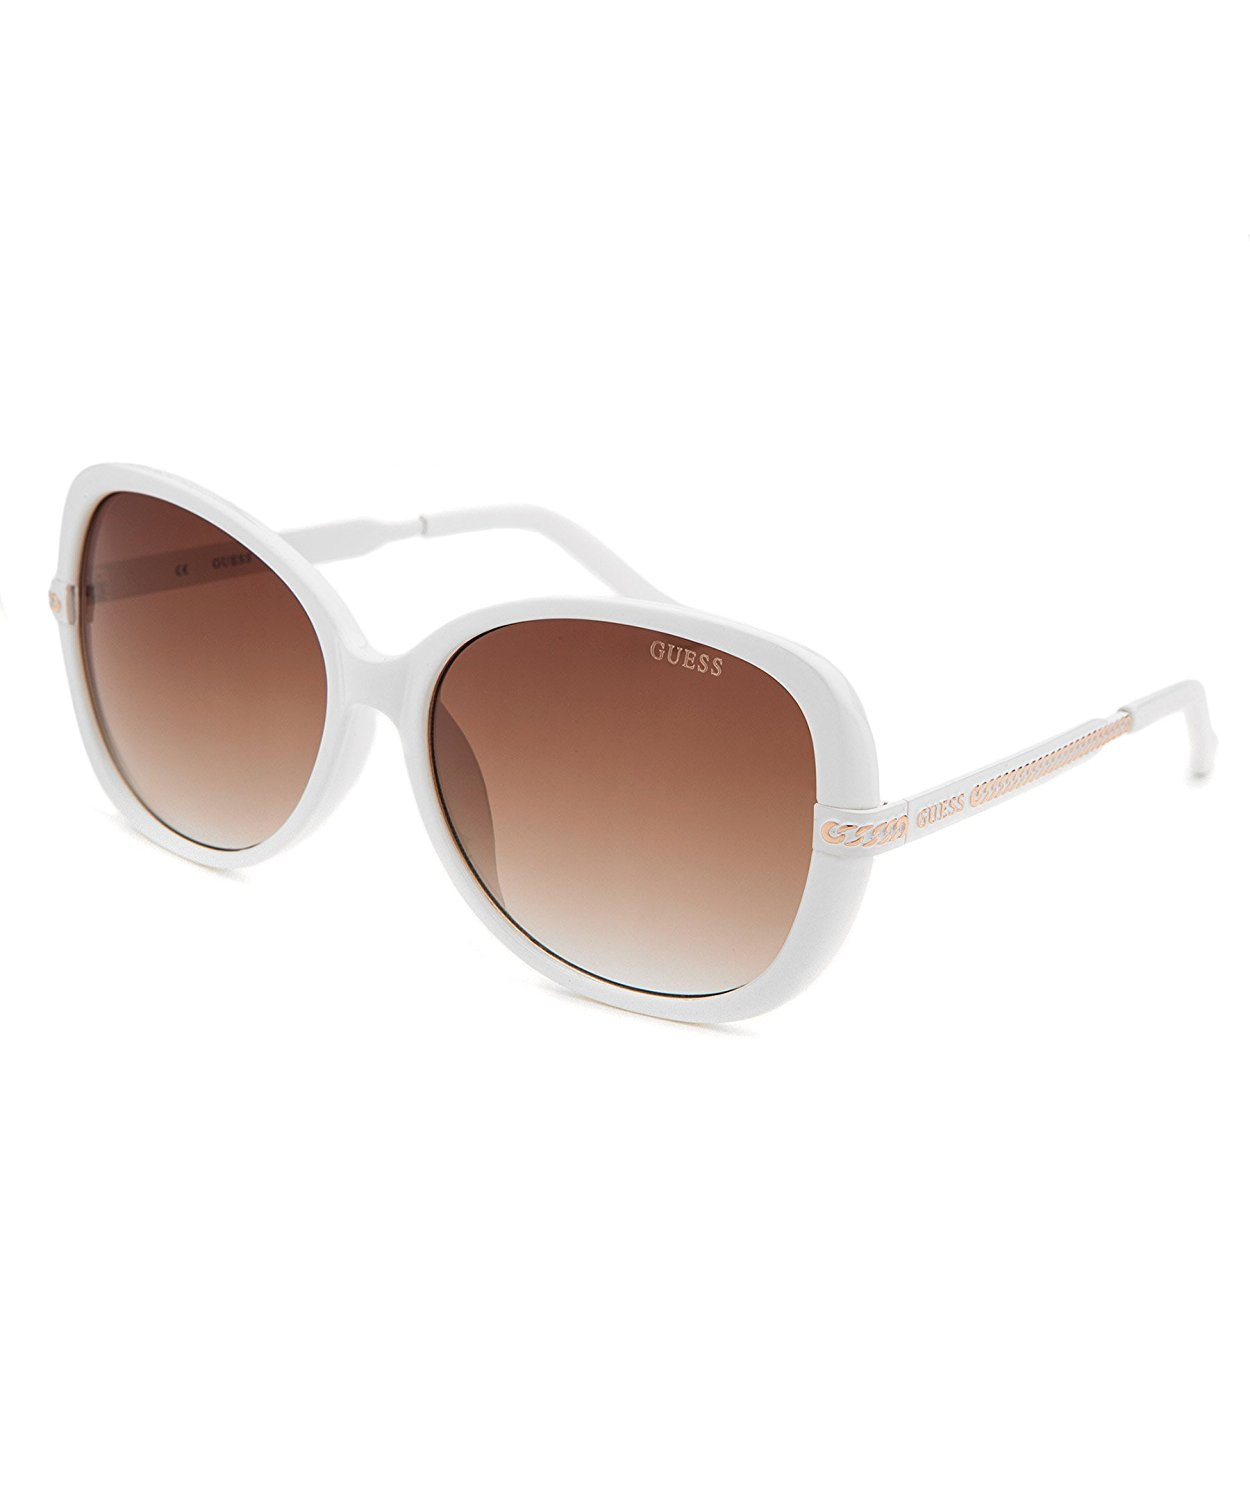 38636a3f9fe GUESS Women s Full Rim Round Chainlink Accent Sunglasses - White  78 ...